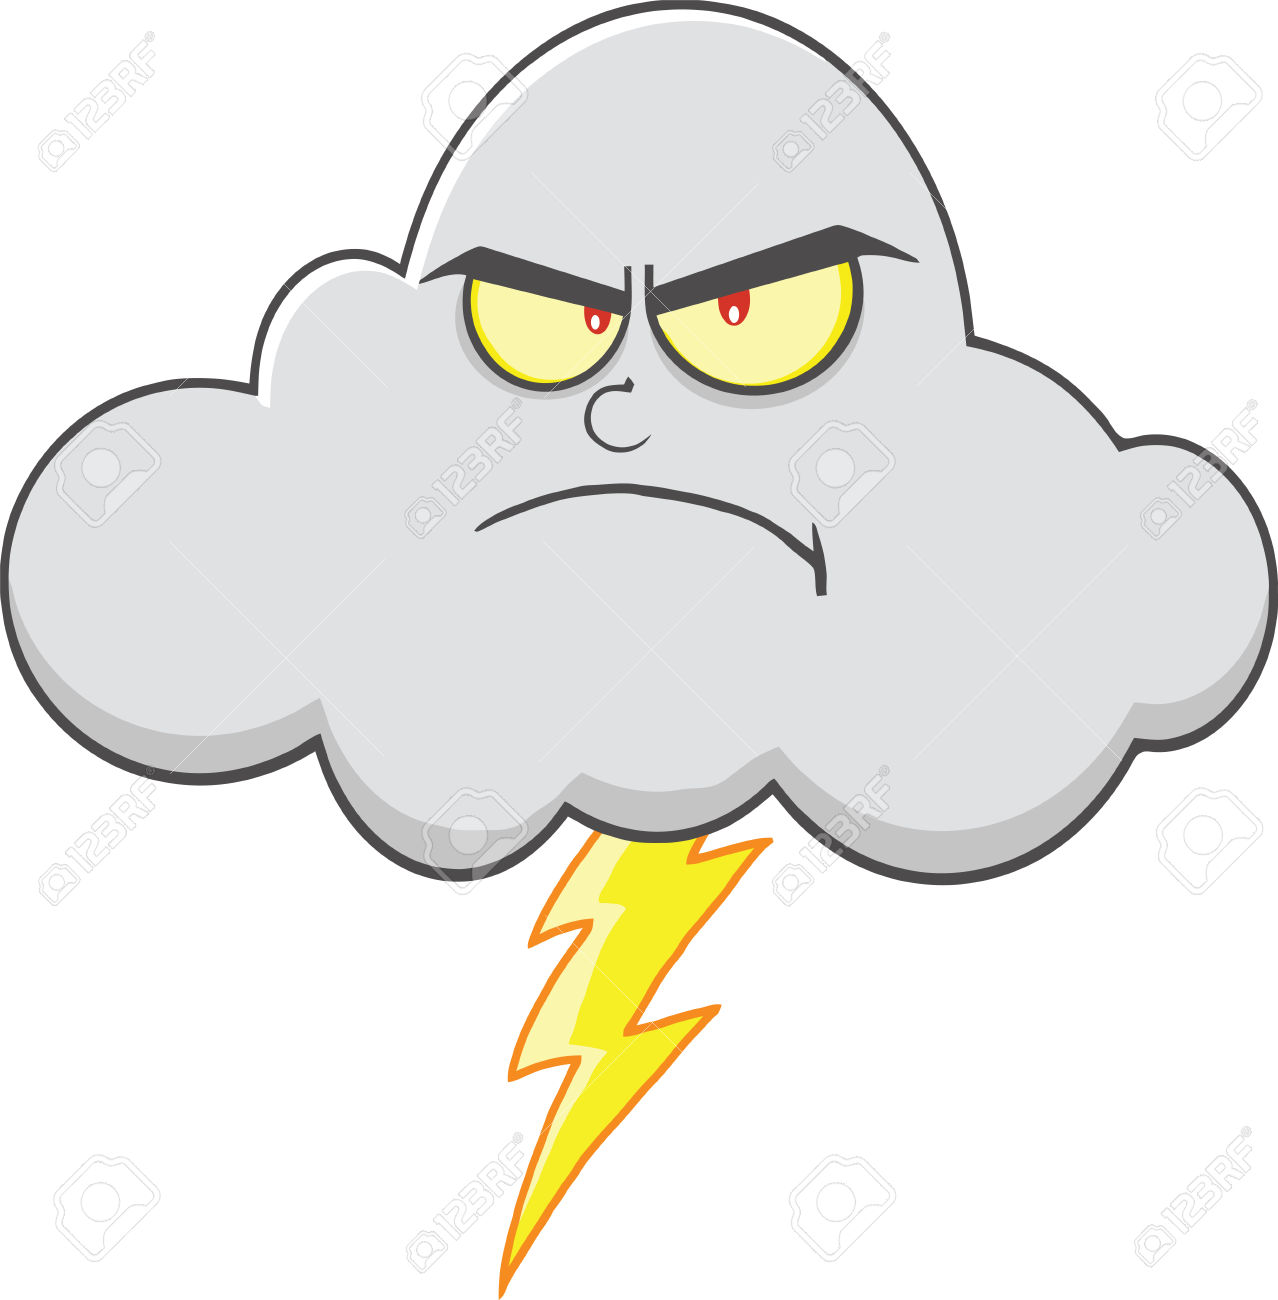 Cloud lightning clipart.